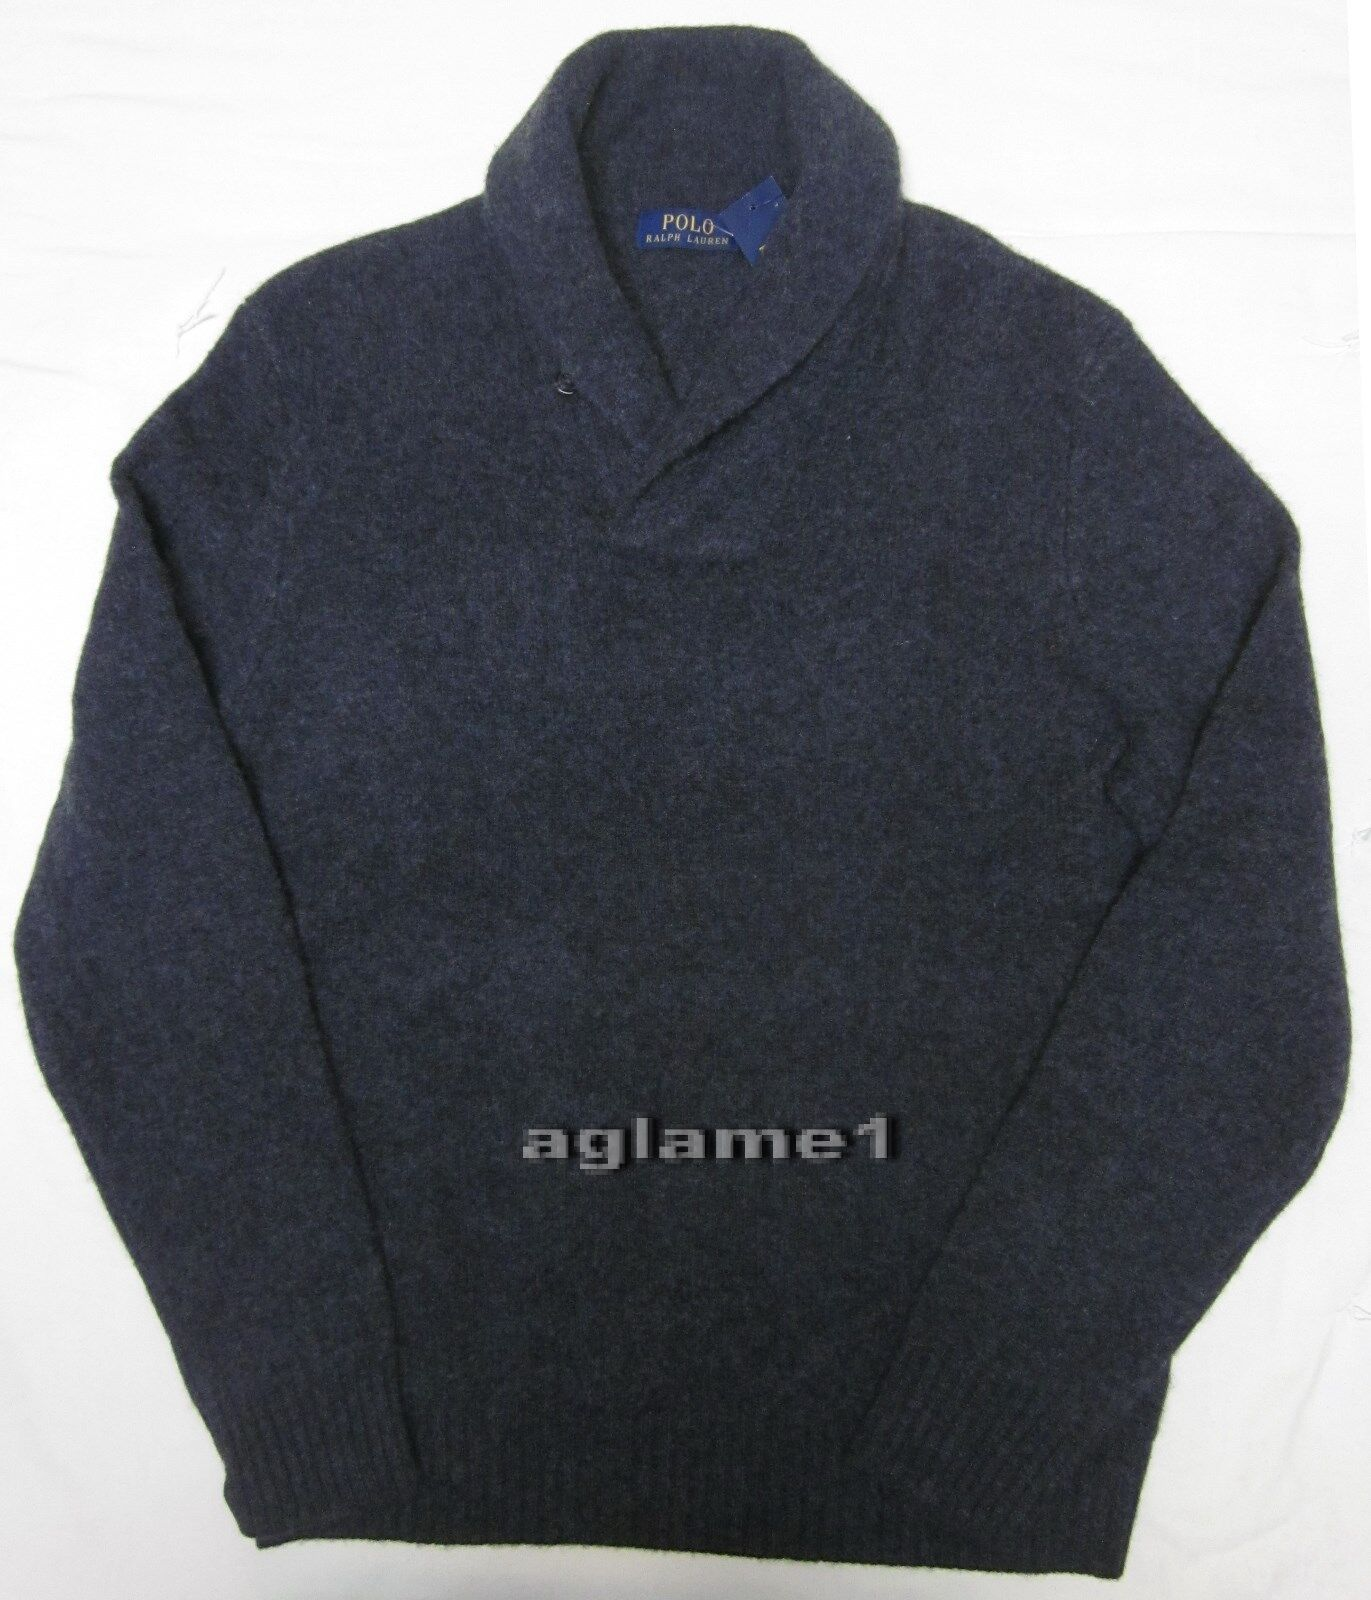 NWT Polo Ralph Lauren cashmere wool shawl sweater  Dark grau M Italian Yarn